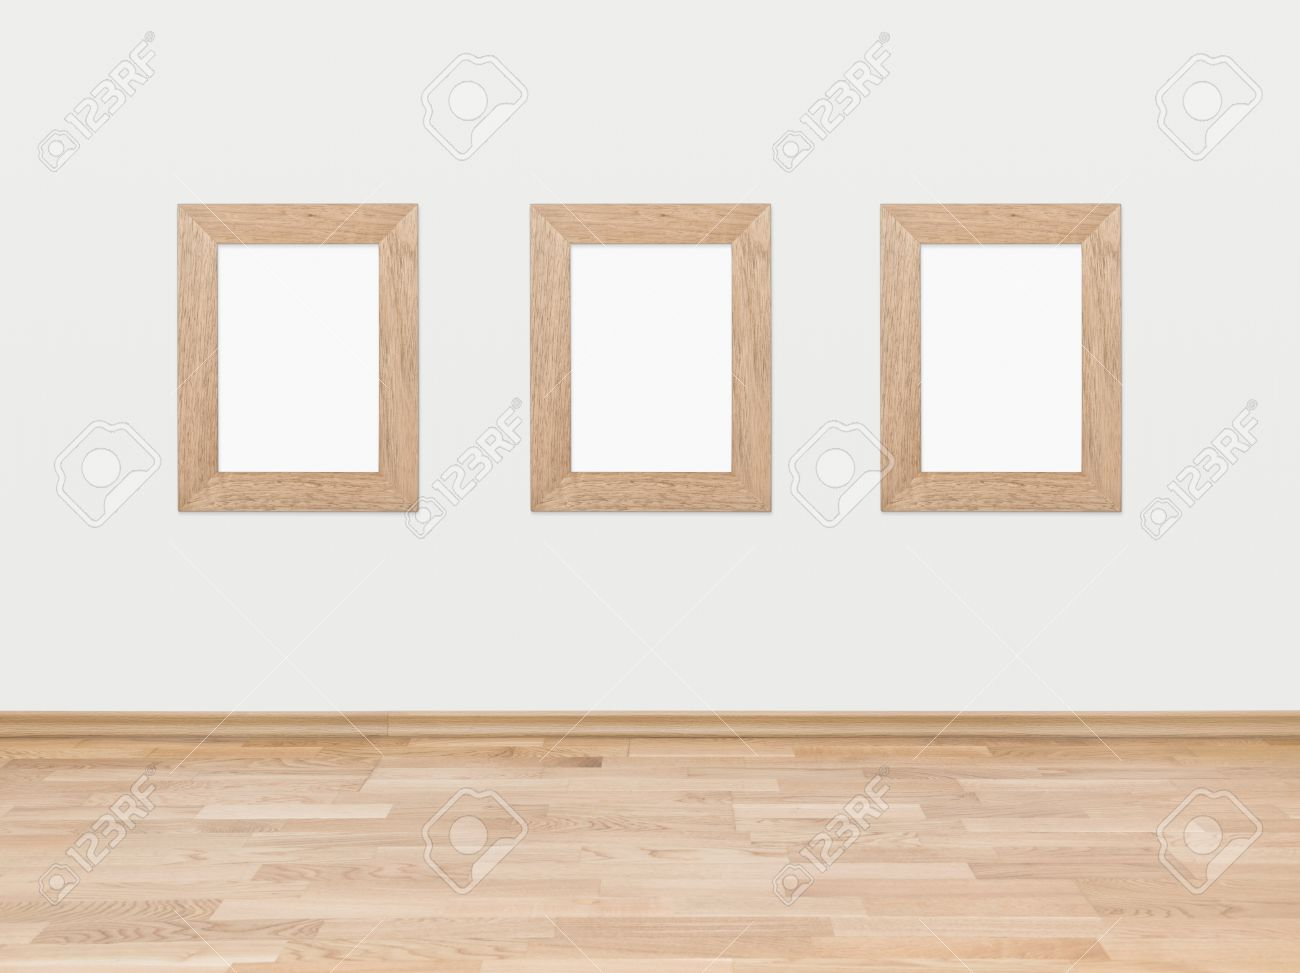 httpspreviews123rfcomimagesbloomuabloomua1 - Wooden Picture Frames